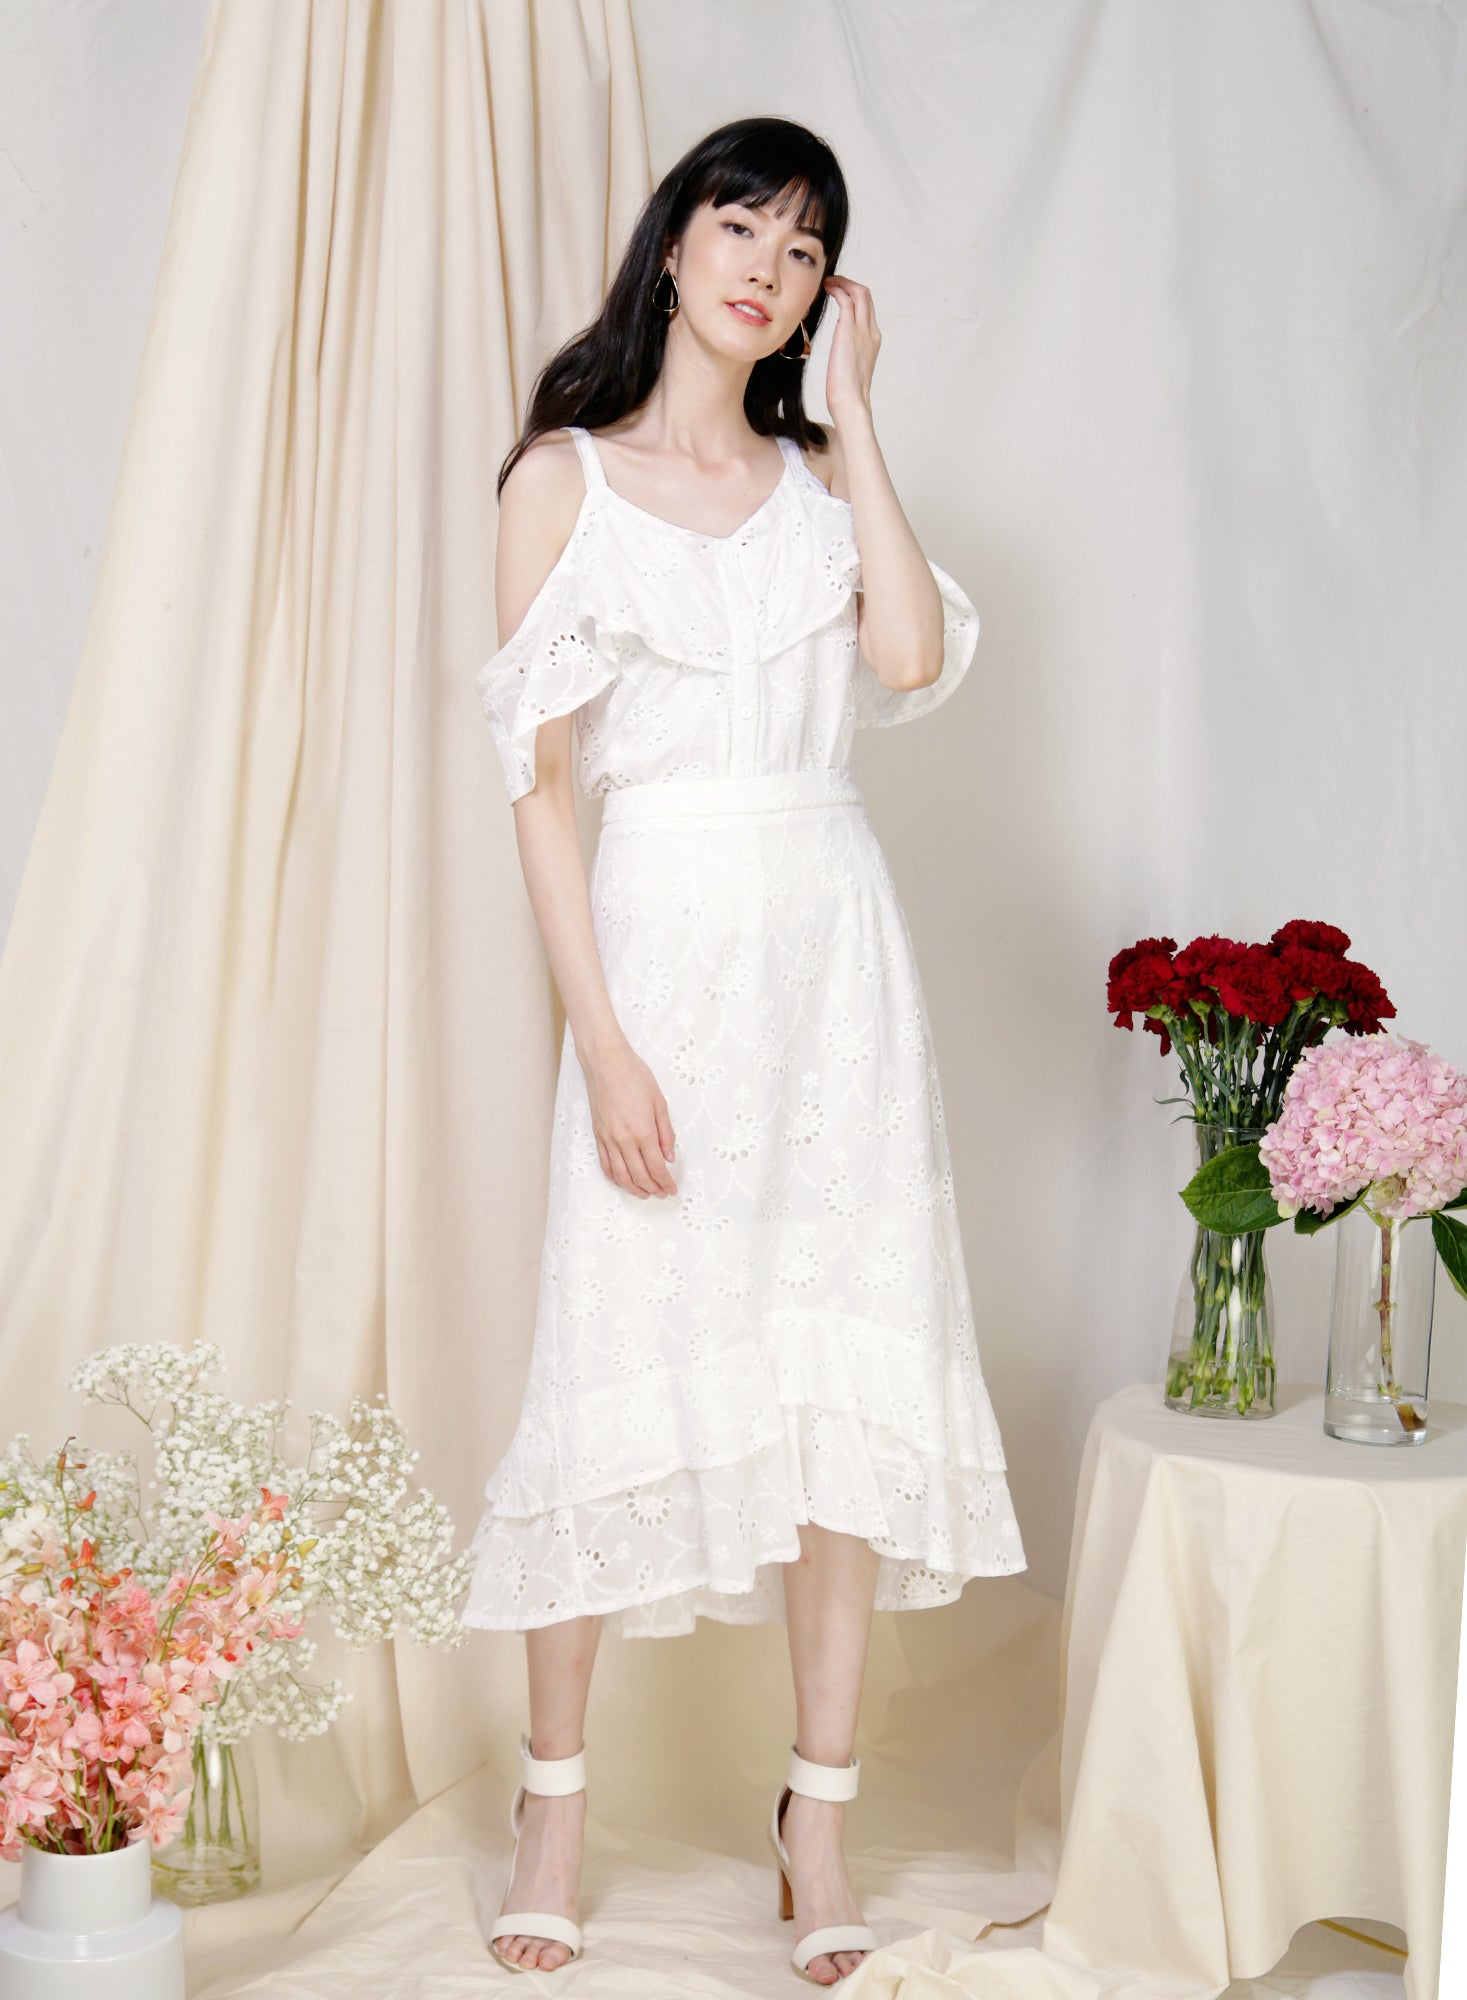 Wistful Double Hem Eyelet Skirt (White)